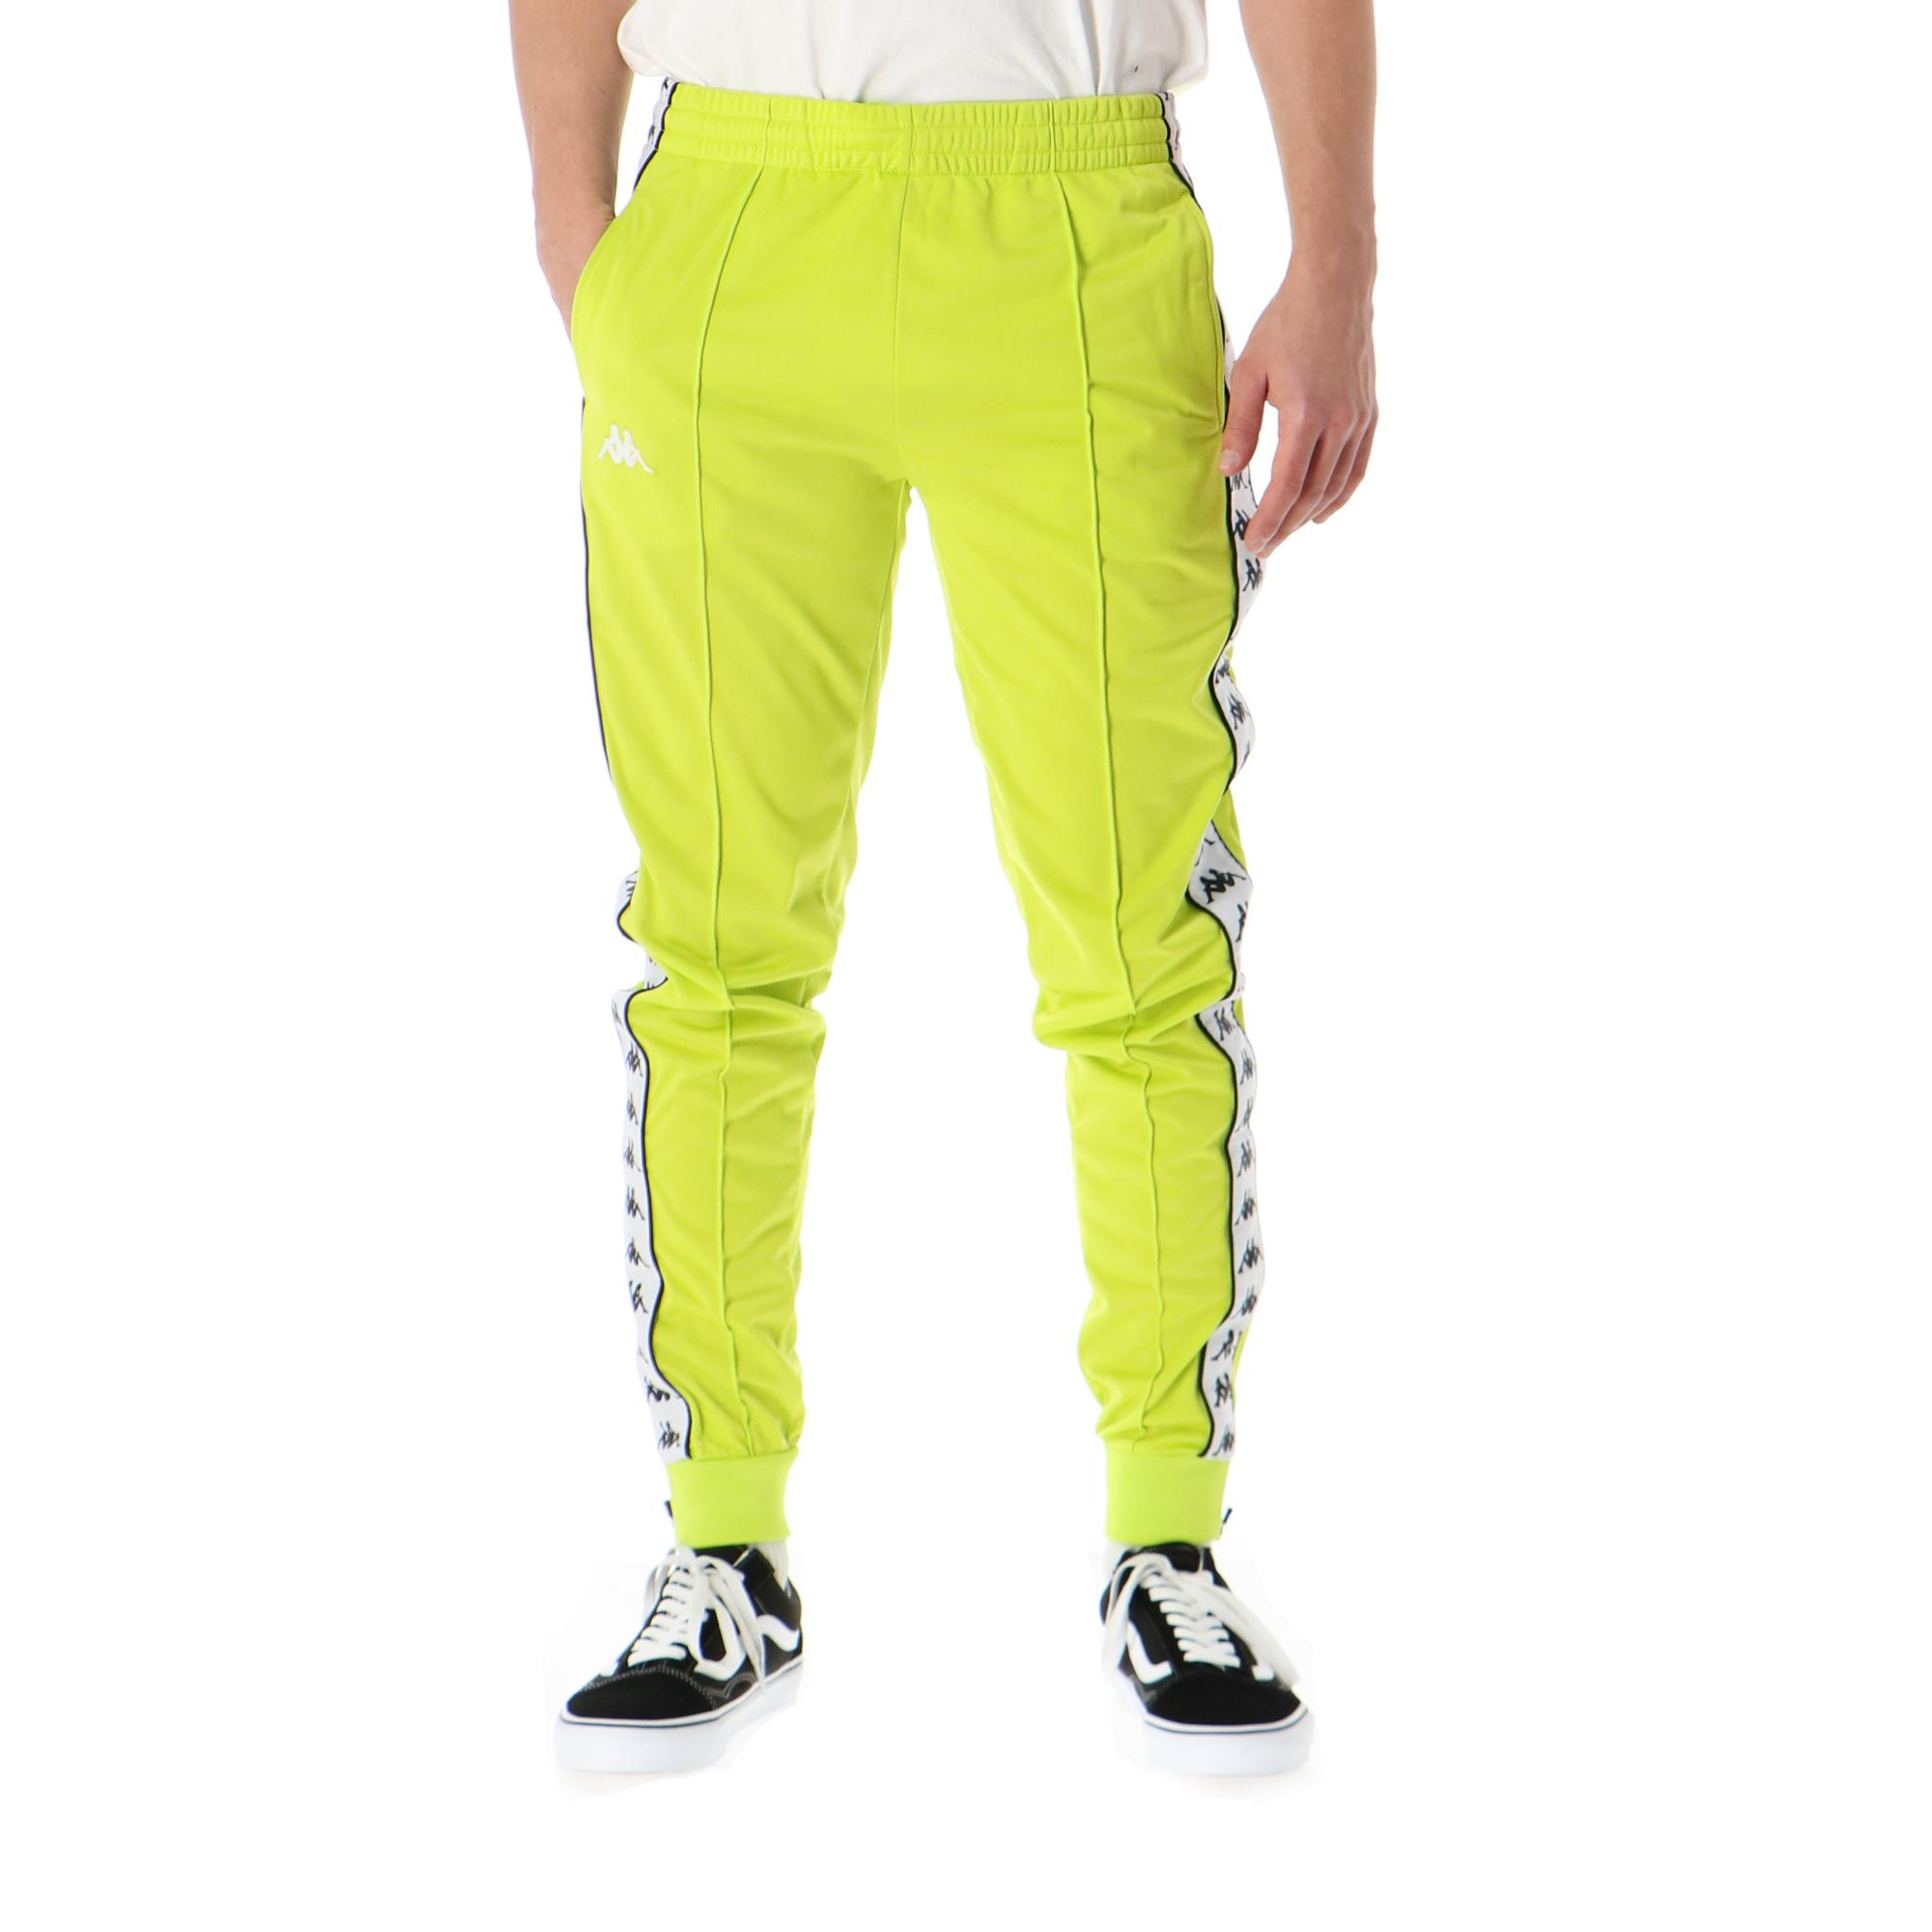 Kappa 222 Banda Rastoria Slim Green lime white